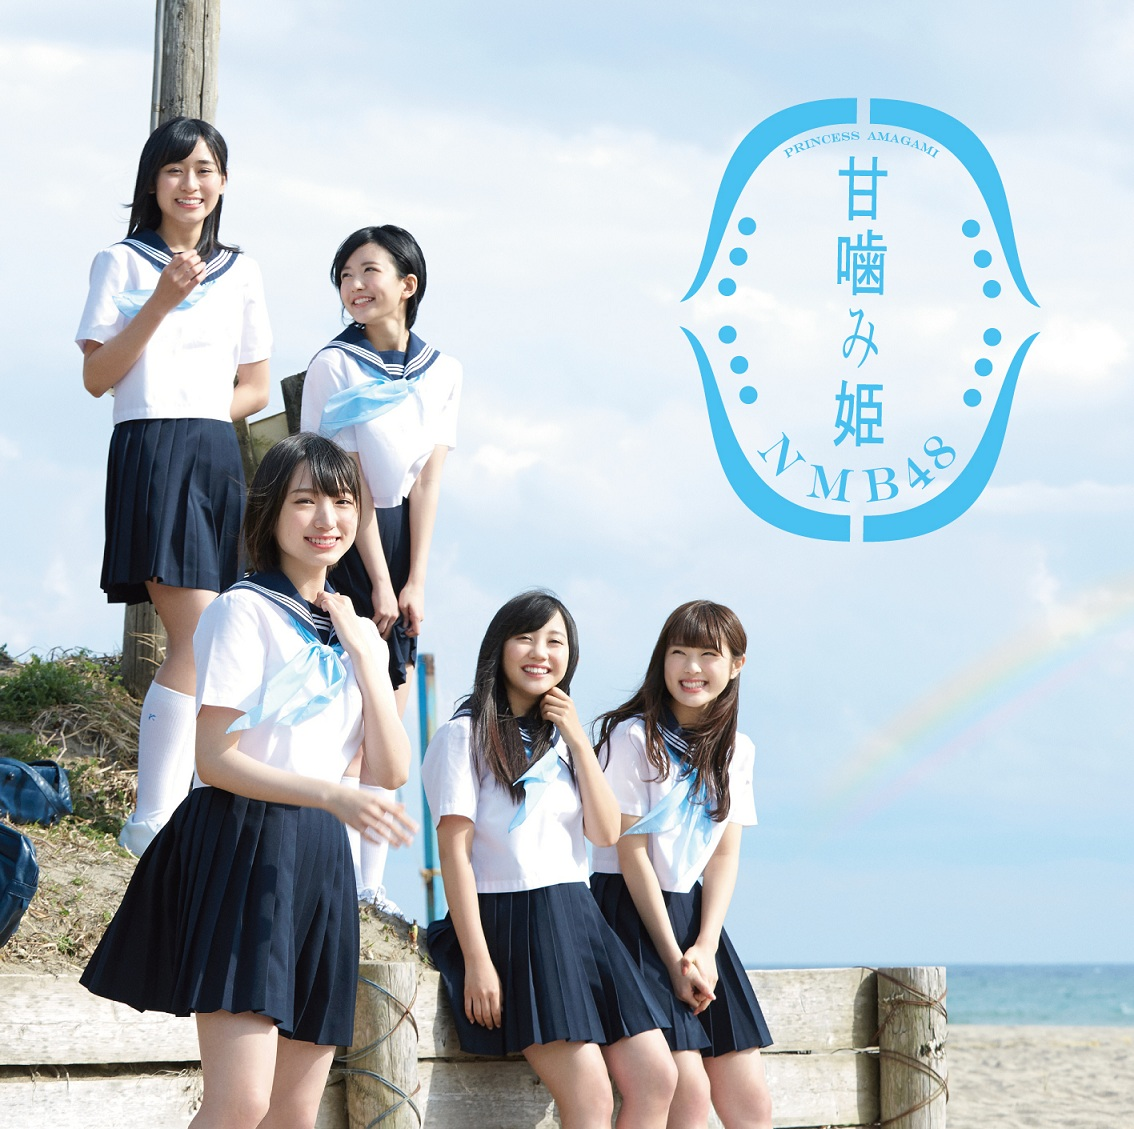 20160423.15.22 NMB48 - Amagami Hime (Type A) cover 4.jpg